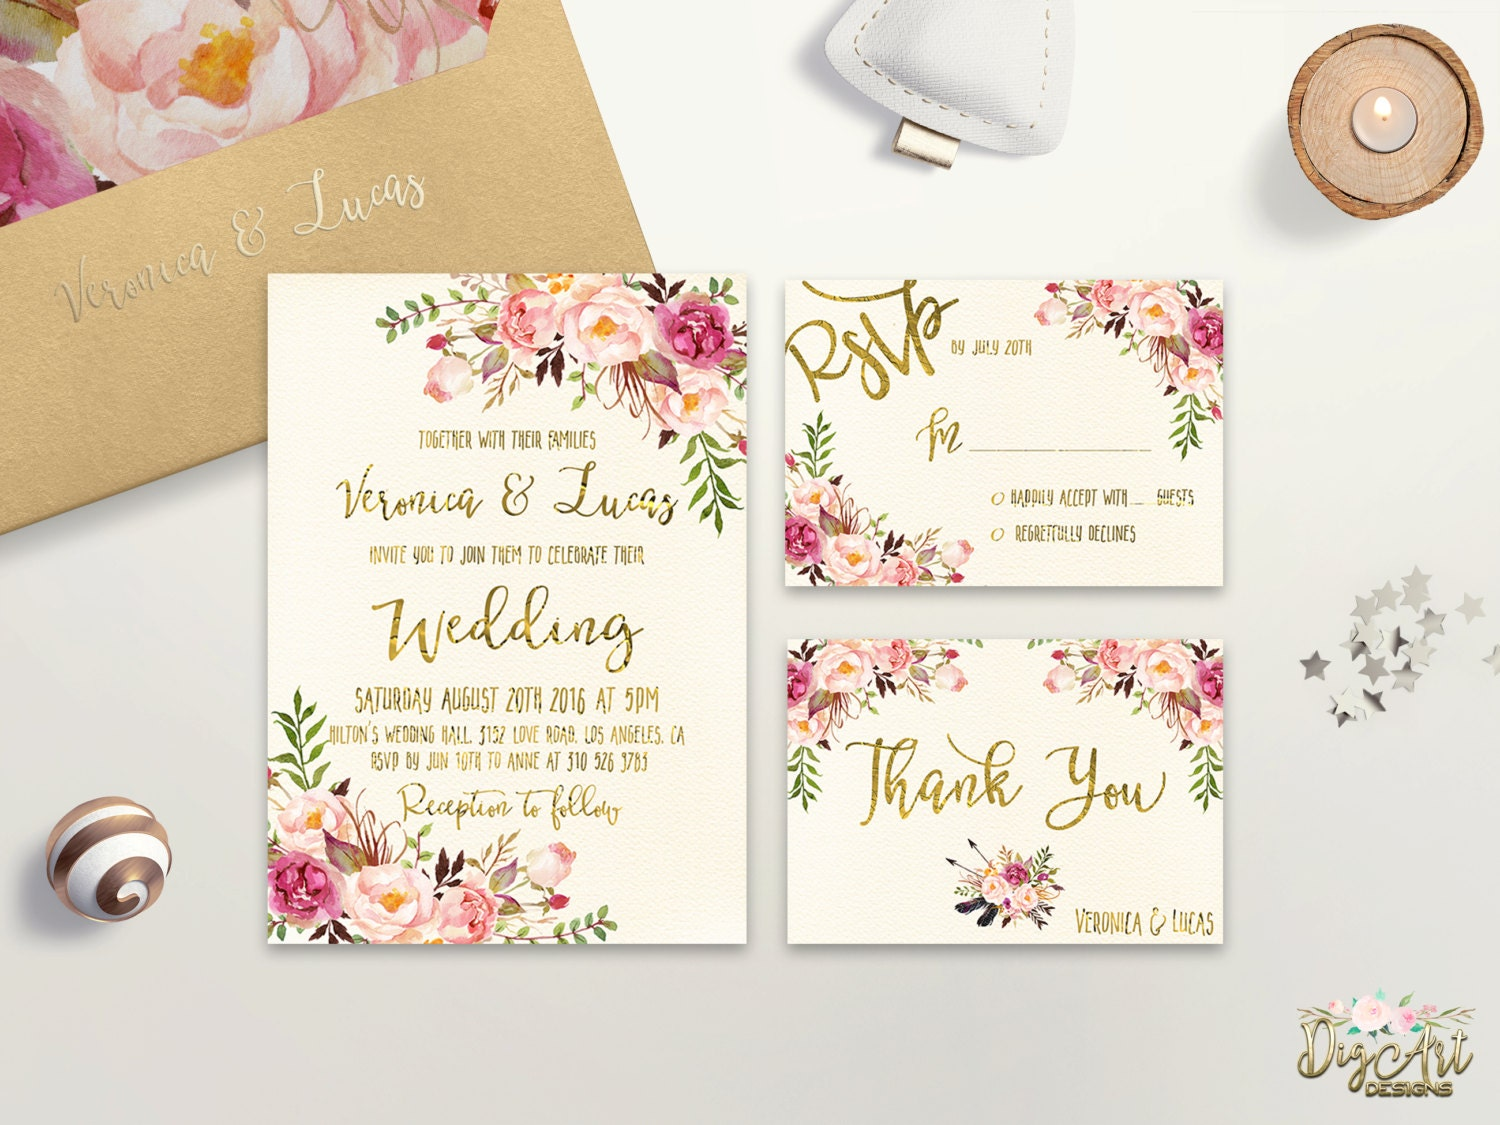 wedding invitation downloads - Roho.4senses.co